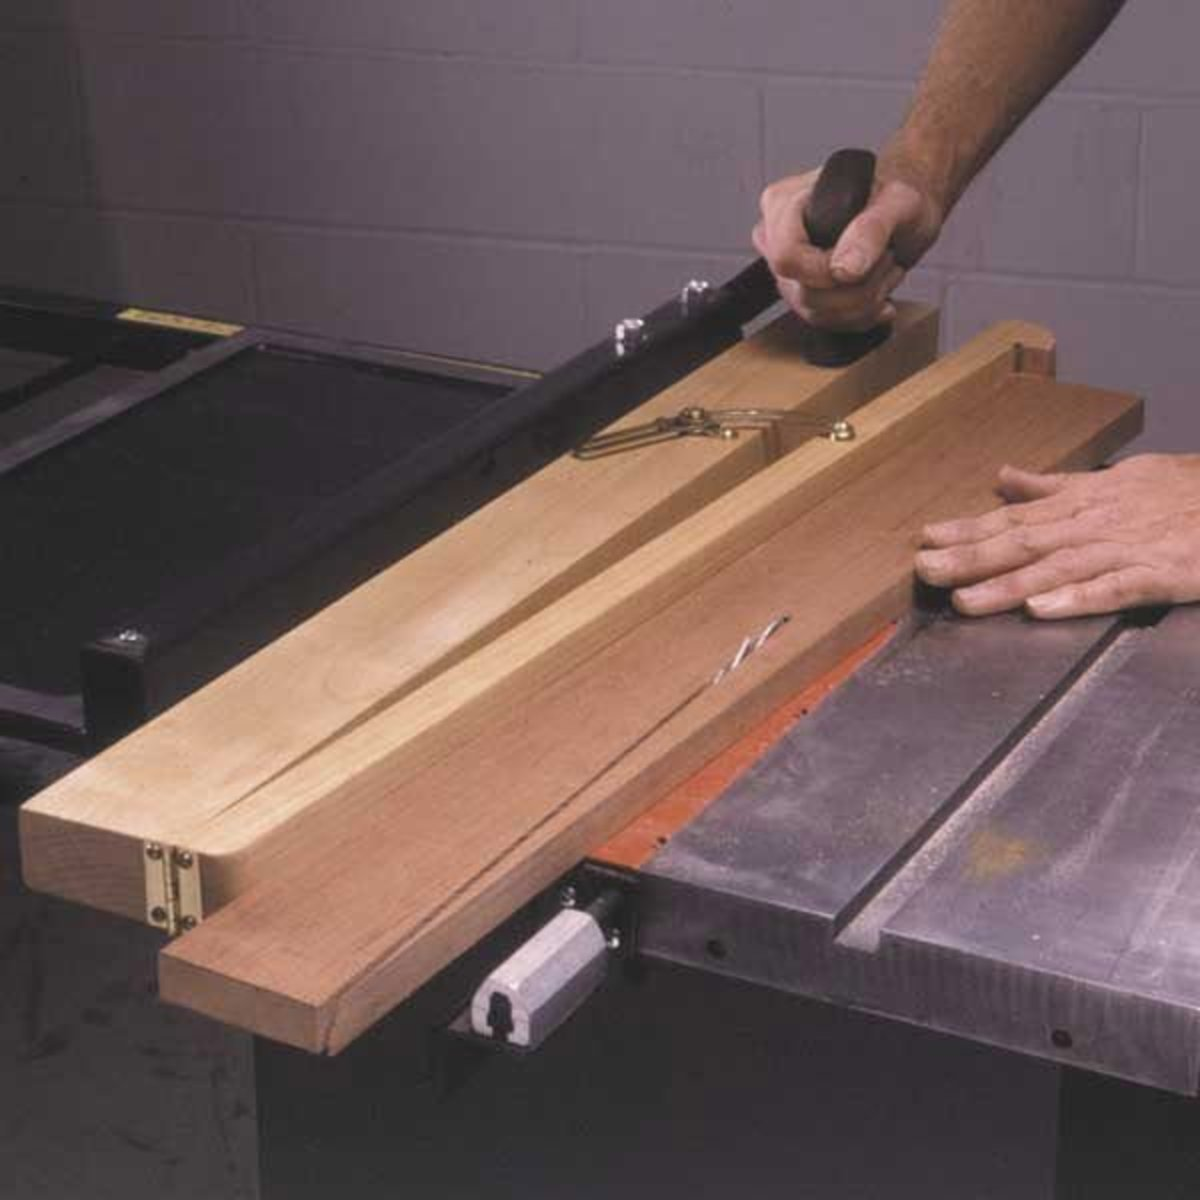 Wood Magazine Woodworking Project Paper Plan To Build Tapering Jig